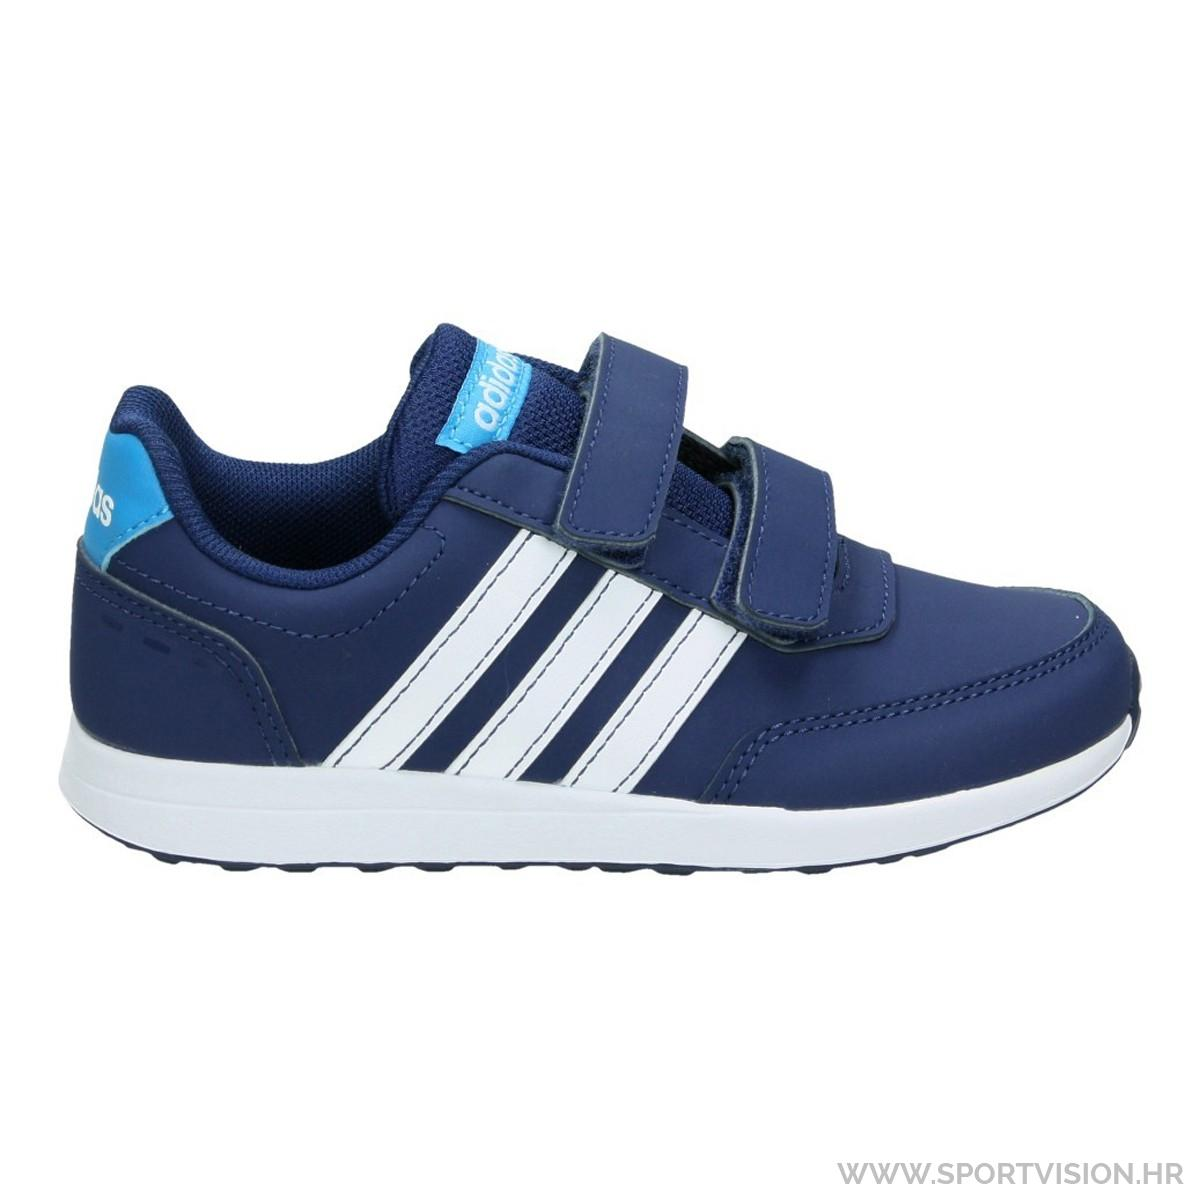 ADIDAS tenisice VS SWITCH 2 CMF C